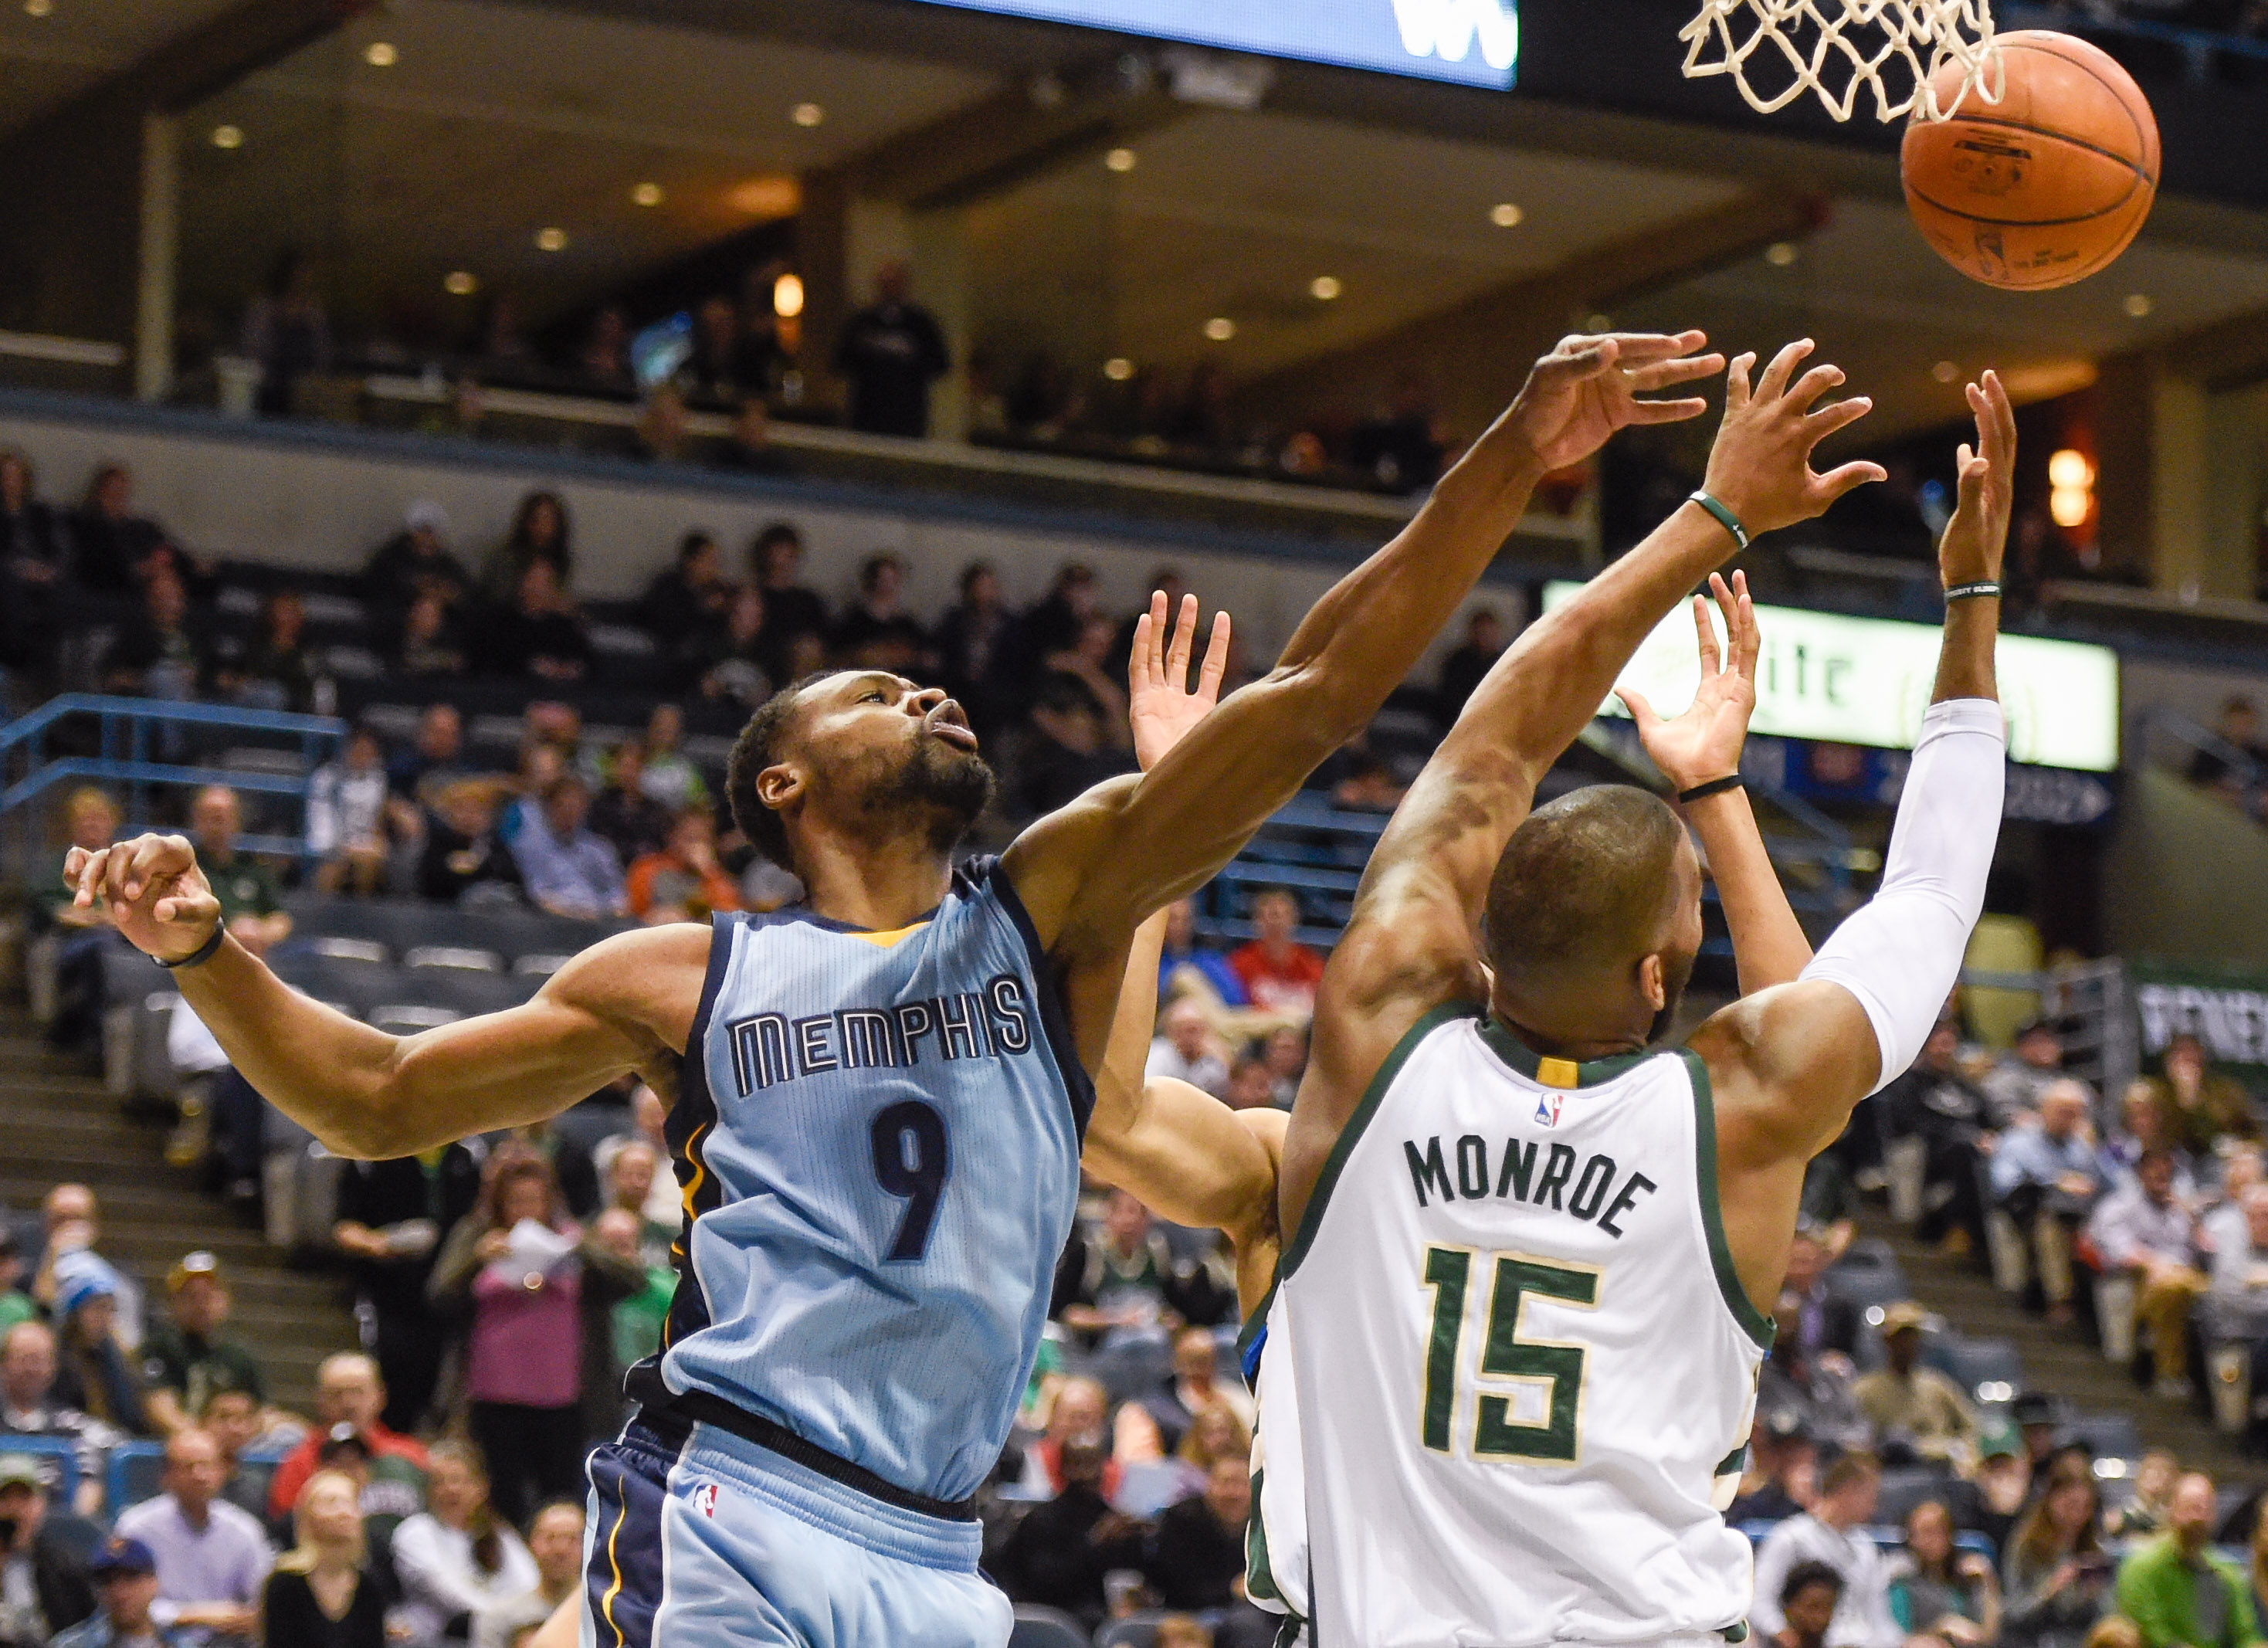 Vince Carter explodes for ideal shooting night against Bucks